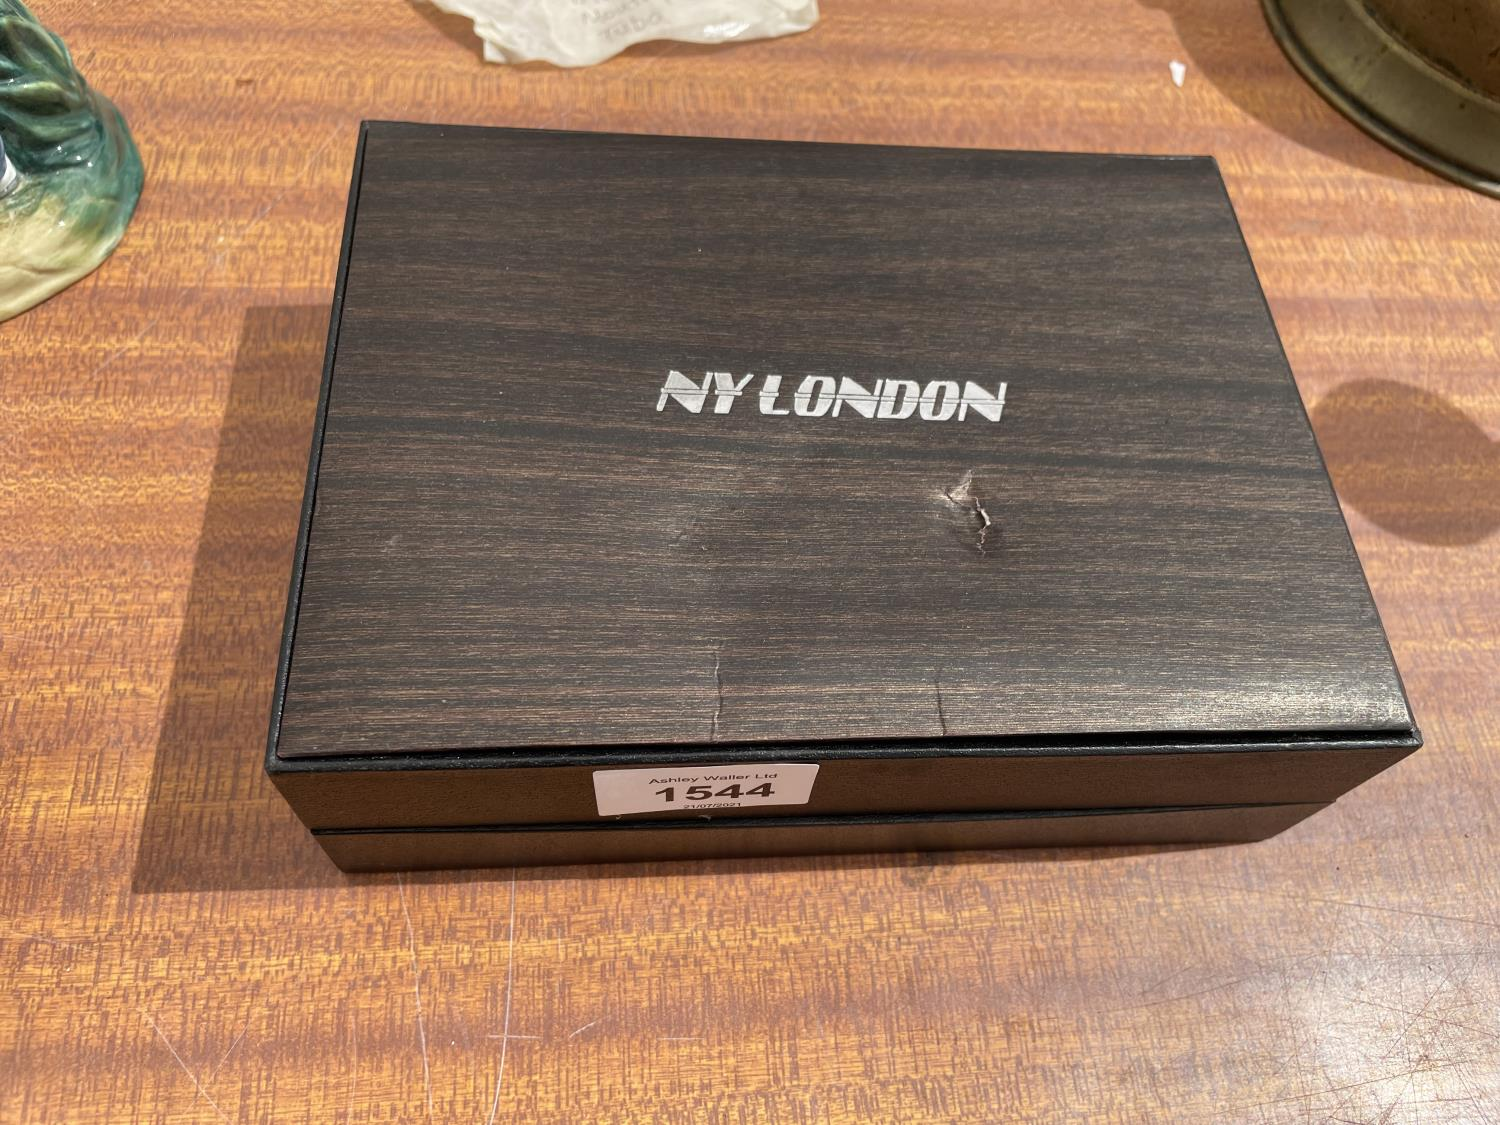 A BOXED NY LONDON WATCH, LIGHTER, PEN AND TORCH SET - Image 6 of 6